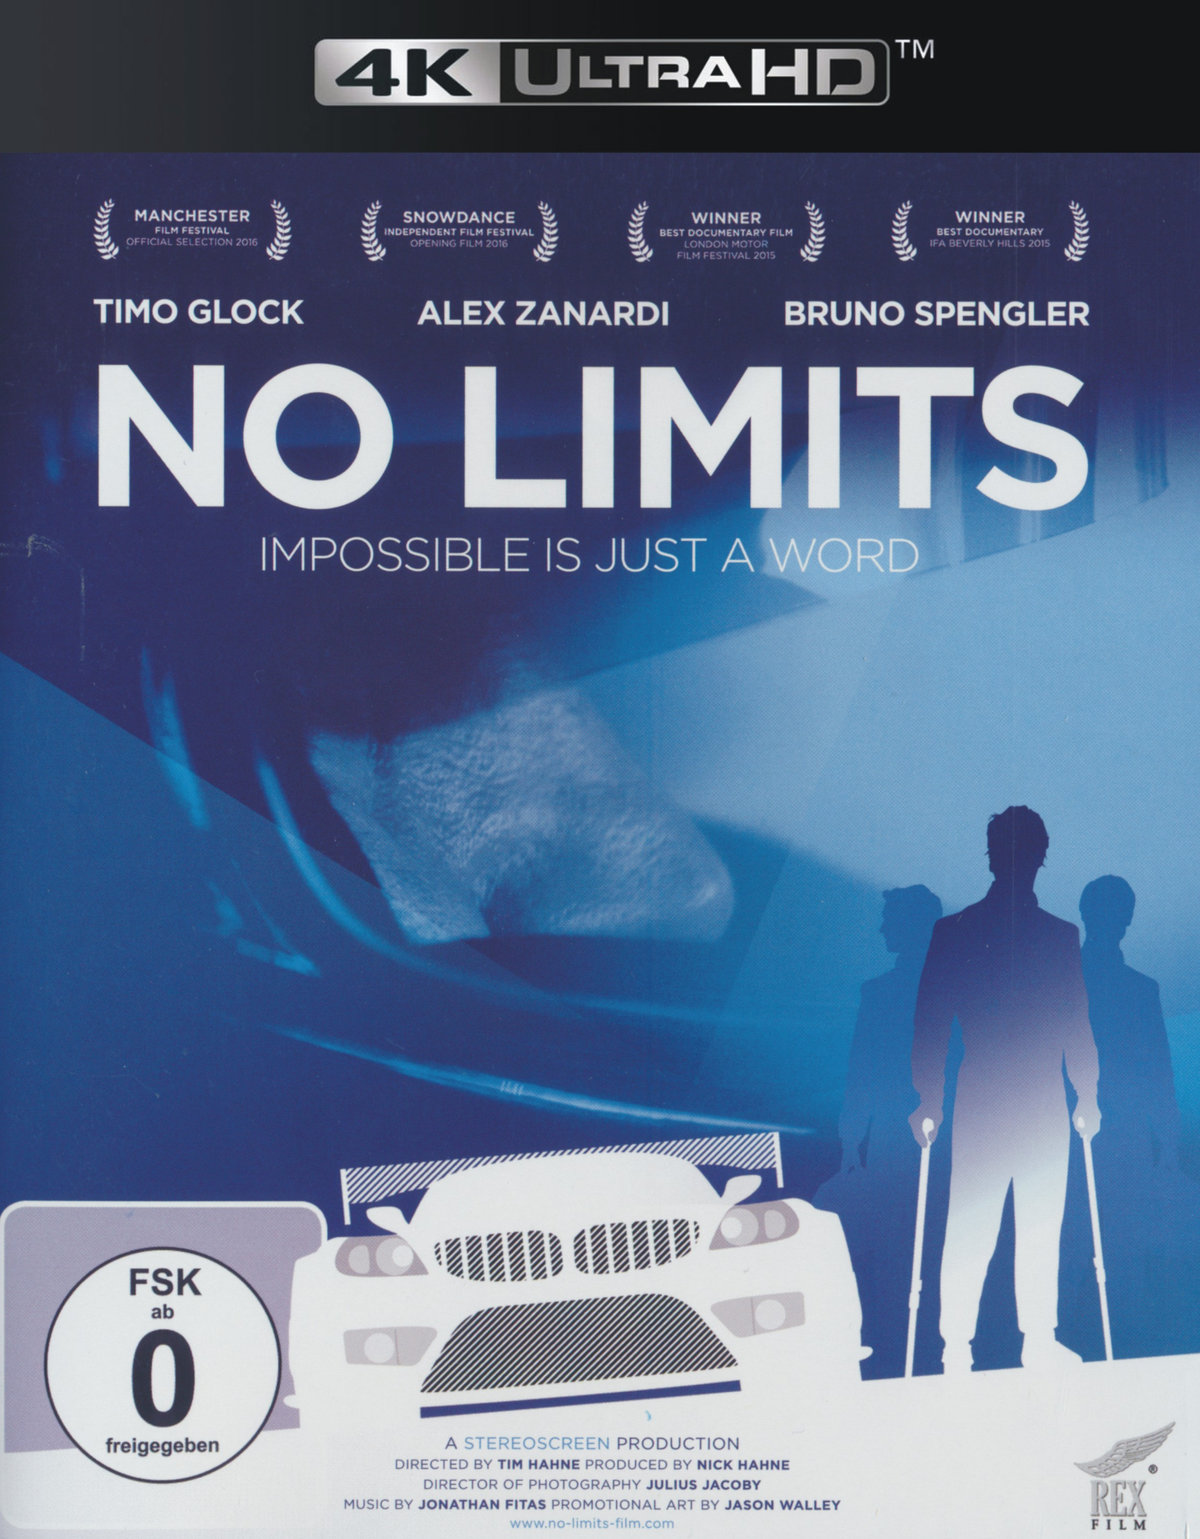 No Limits 4K (2015) - Impossible is just a word